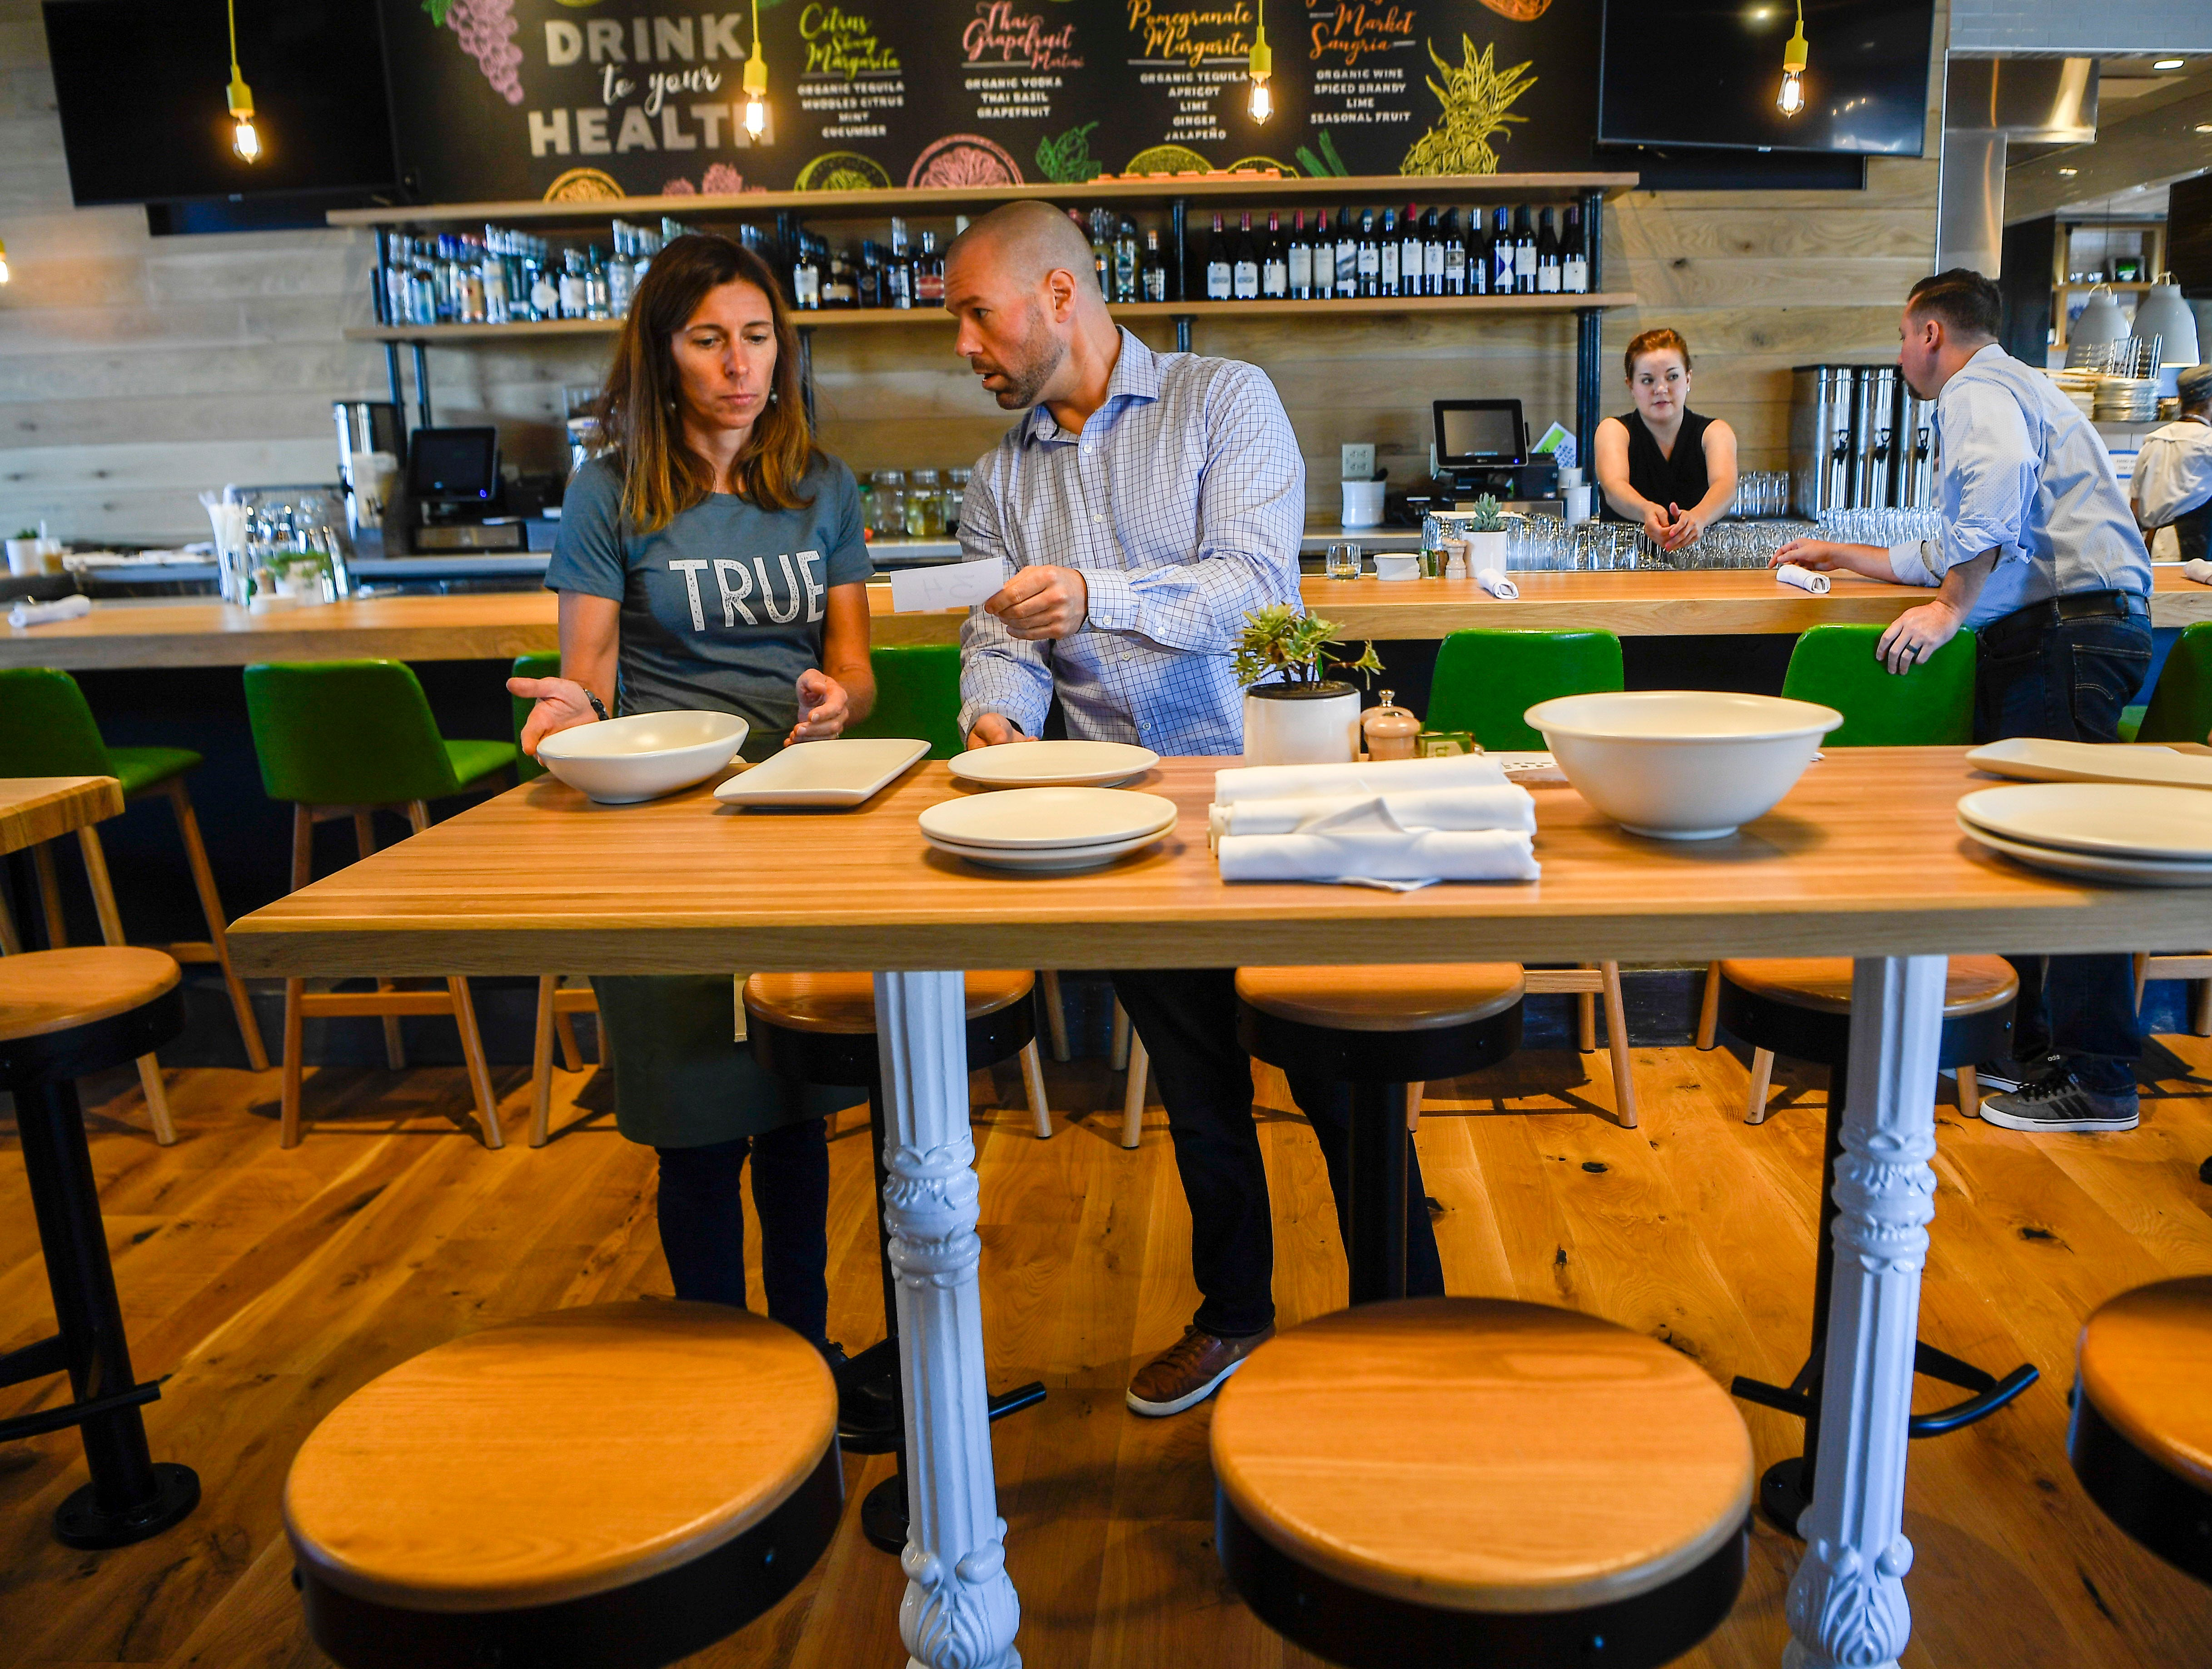 Mike Perrin, right, instructs Jackie Tulumaris during training at the new True Food Kitchen in Green Hills on Thursday, Sept. 20, 2018.